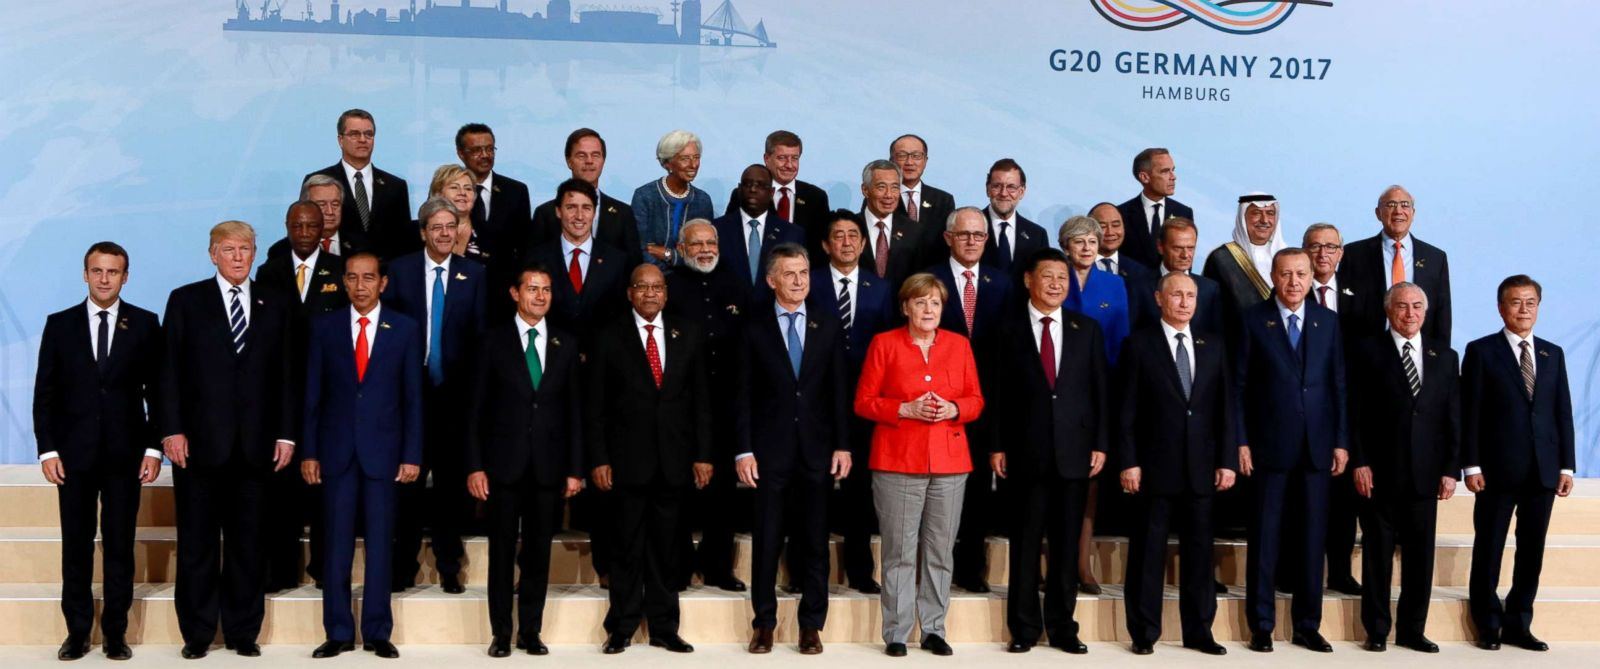 Image result for G20 leaders 2017 Hamburg,